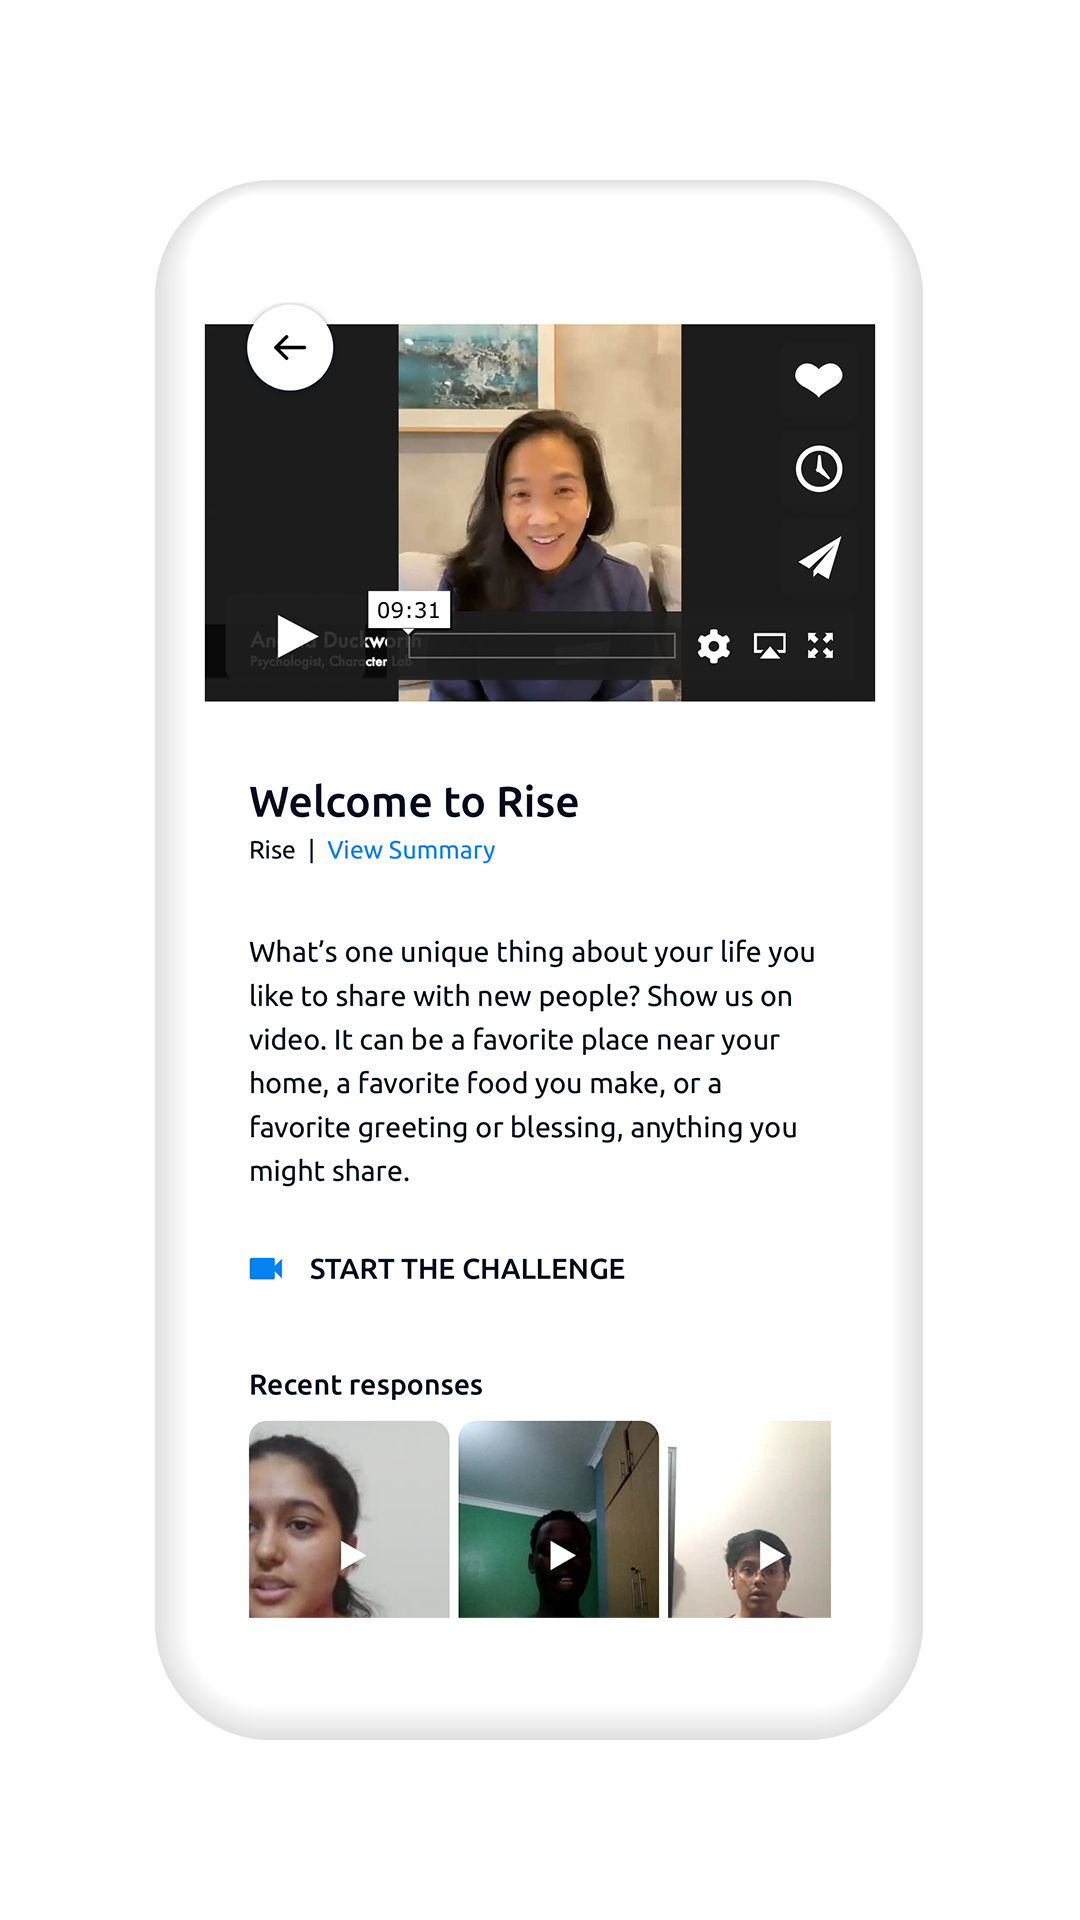 Smartphone showing the welcome to Rise page